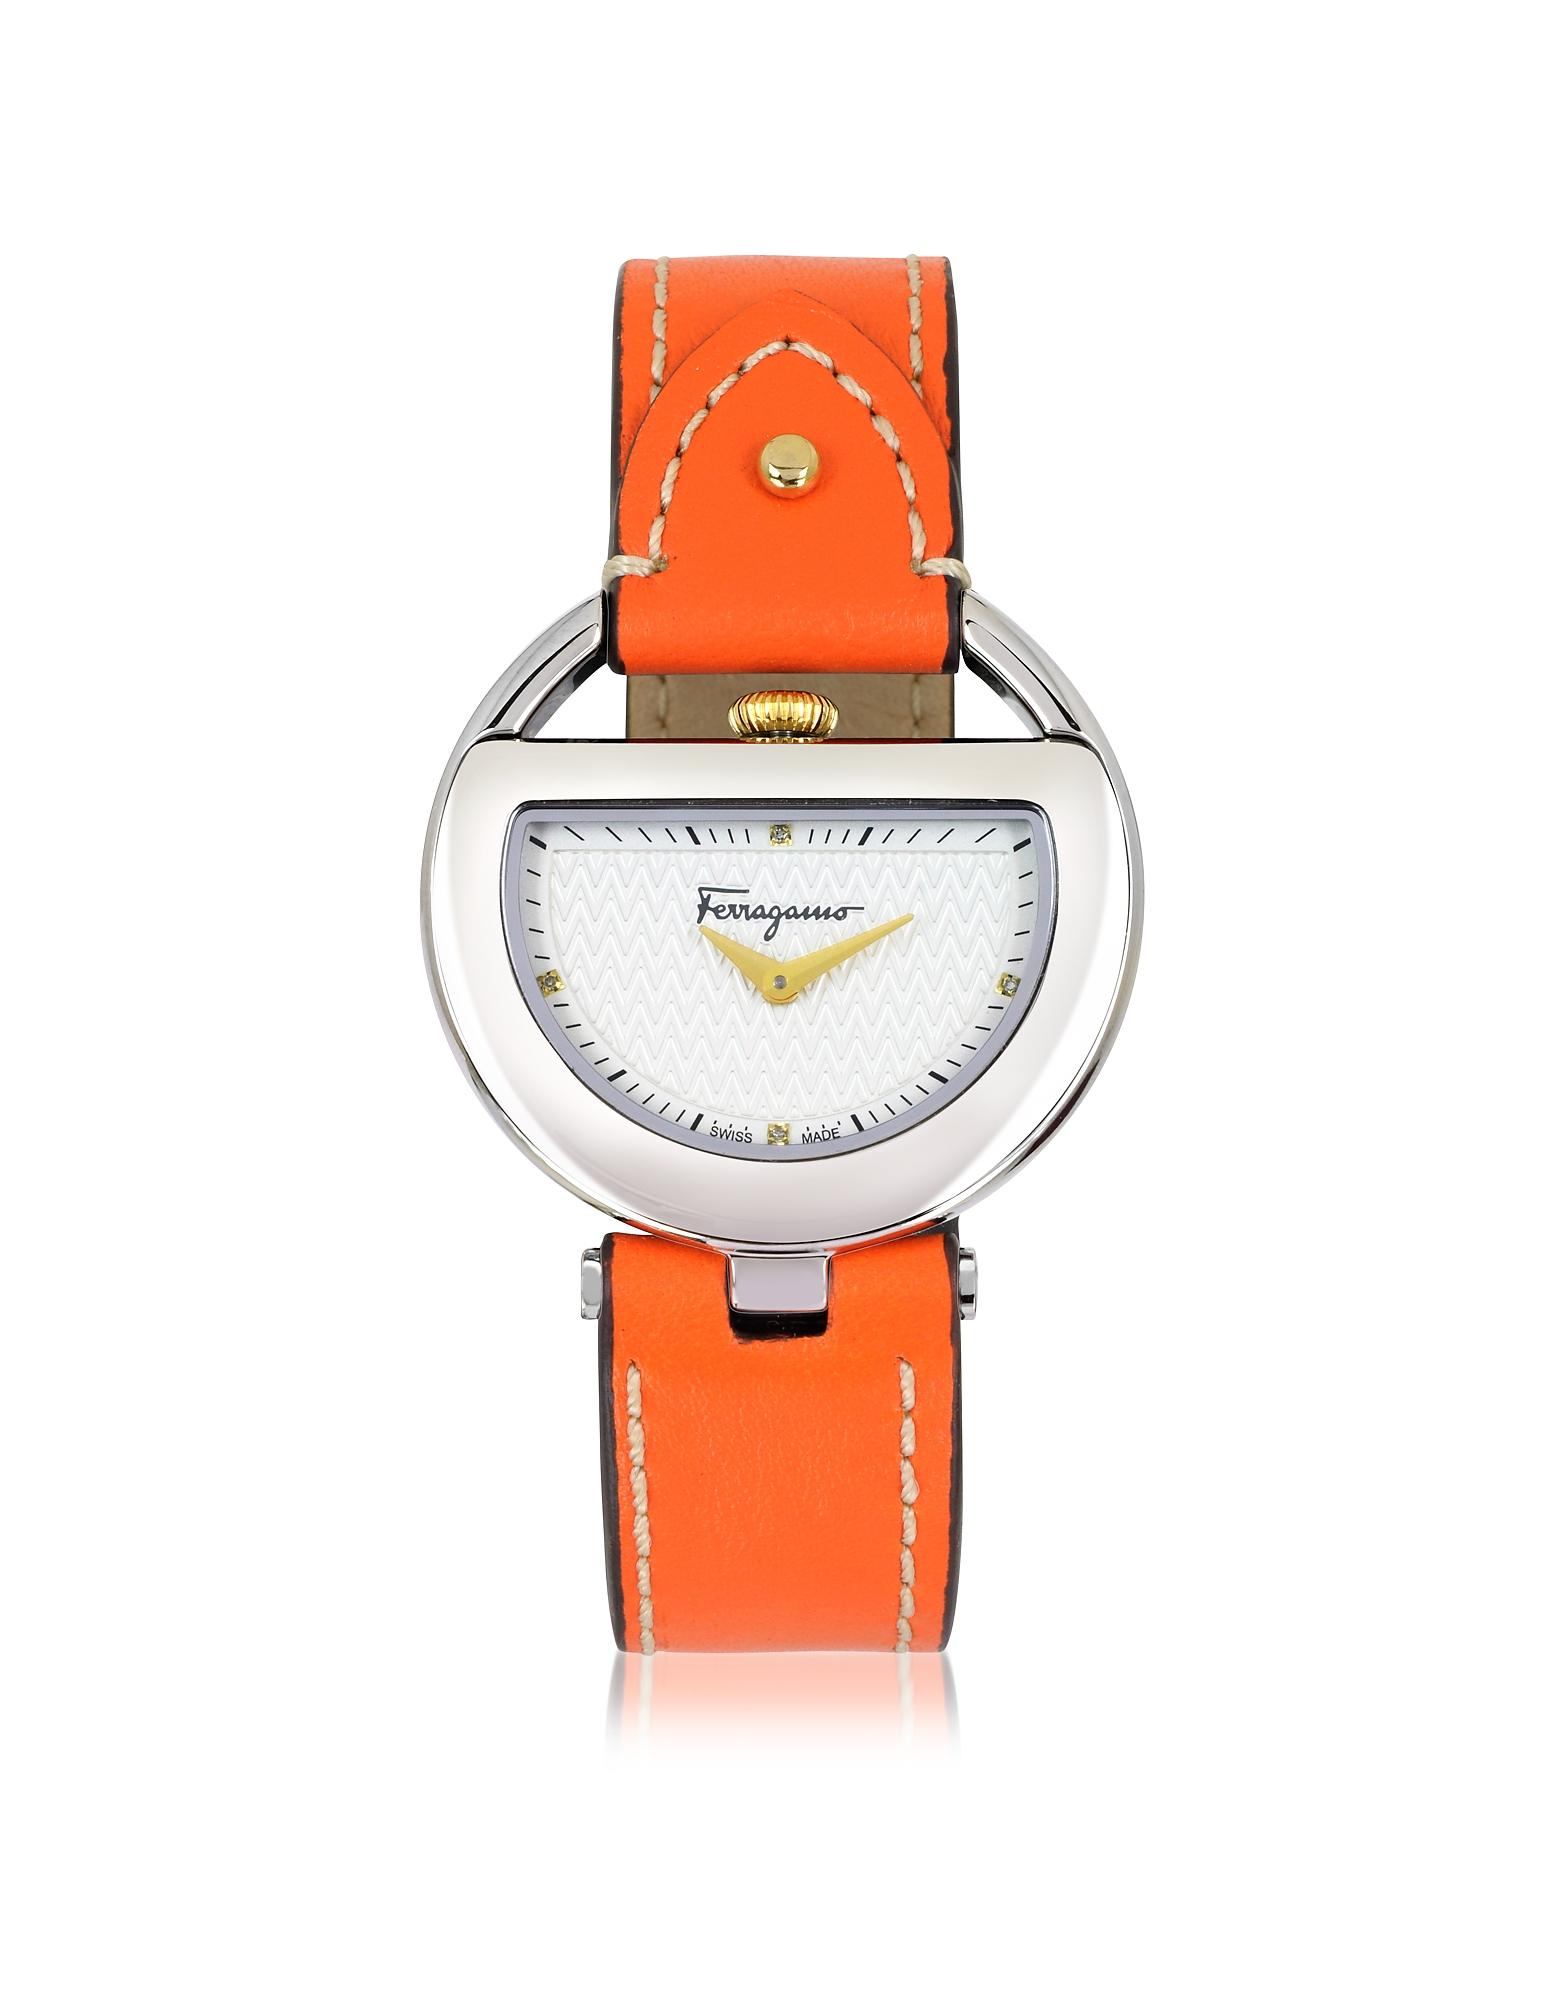 Salvatore Ferragamo Designer Women's Watches, Buckle Collection Silver Tone Stainless Steel Case and Orange Leather Strap Women's Watch